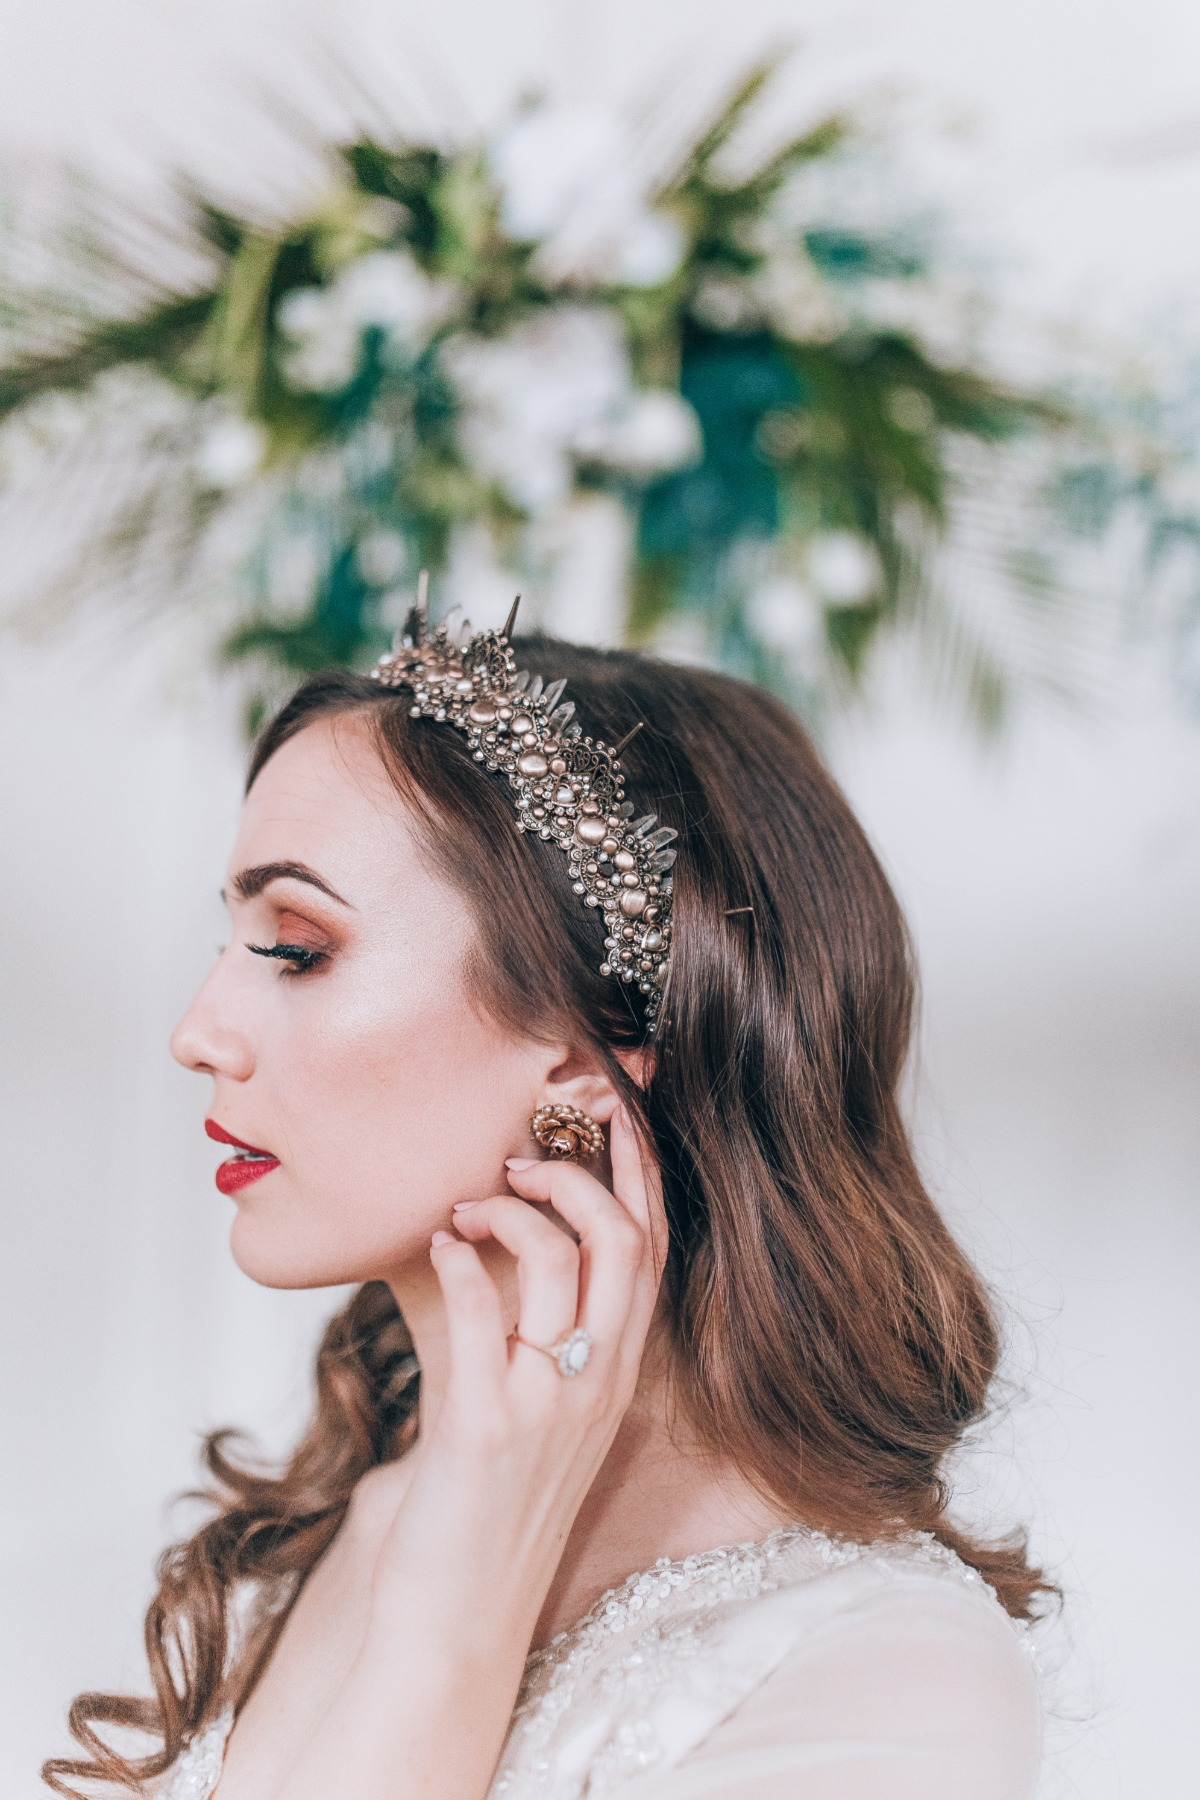 Learn How To Bring The Outside In With This Casablanca Inspired Shoot